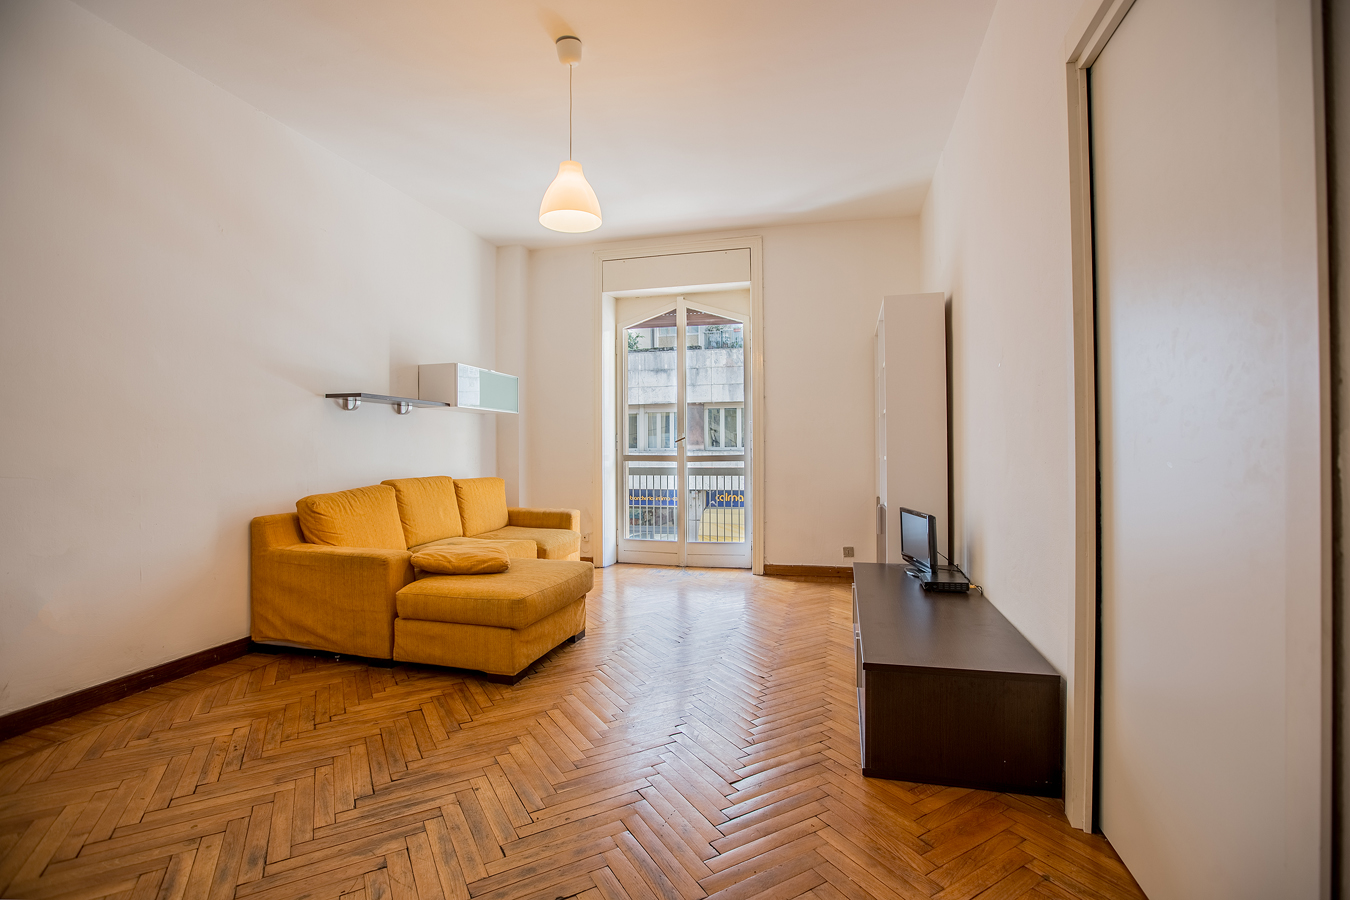 Student Apartment for rent in Via Ruggero Boscovich, 17, 1° floor, in Milano, Italy